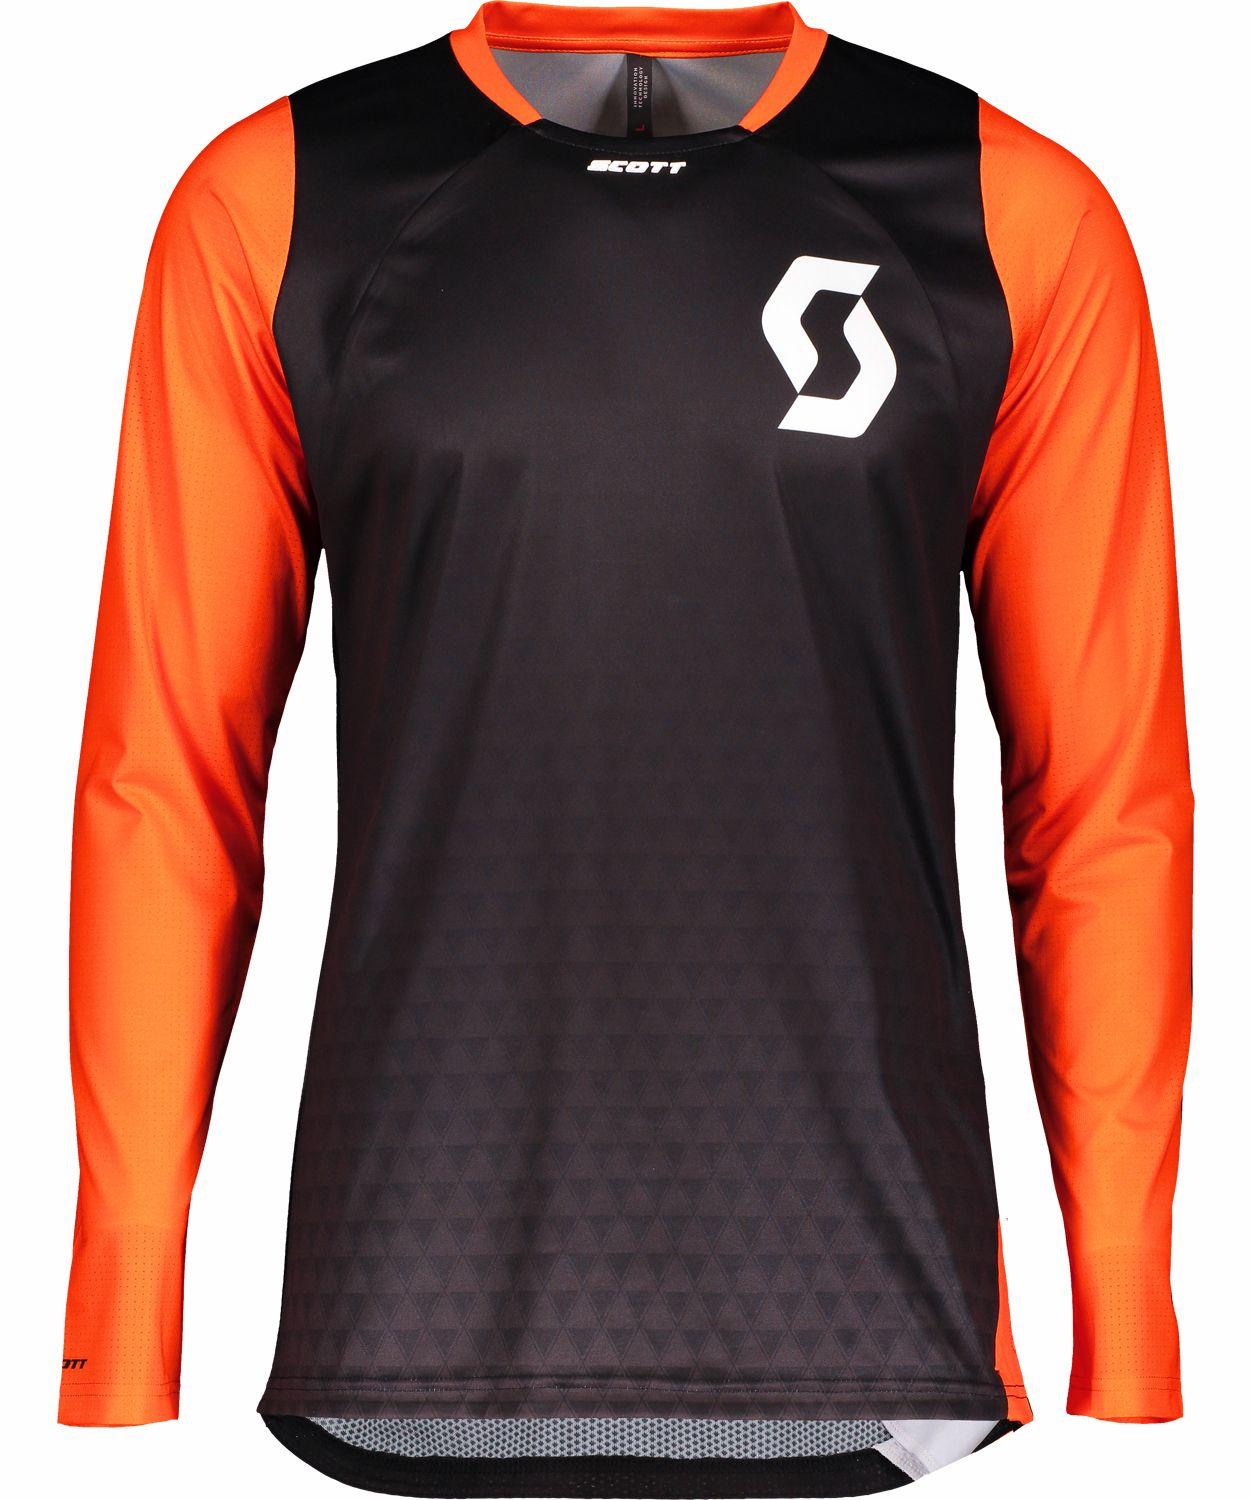 ... cycling jersey black exotic orange (269475). Previous 21091781c